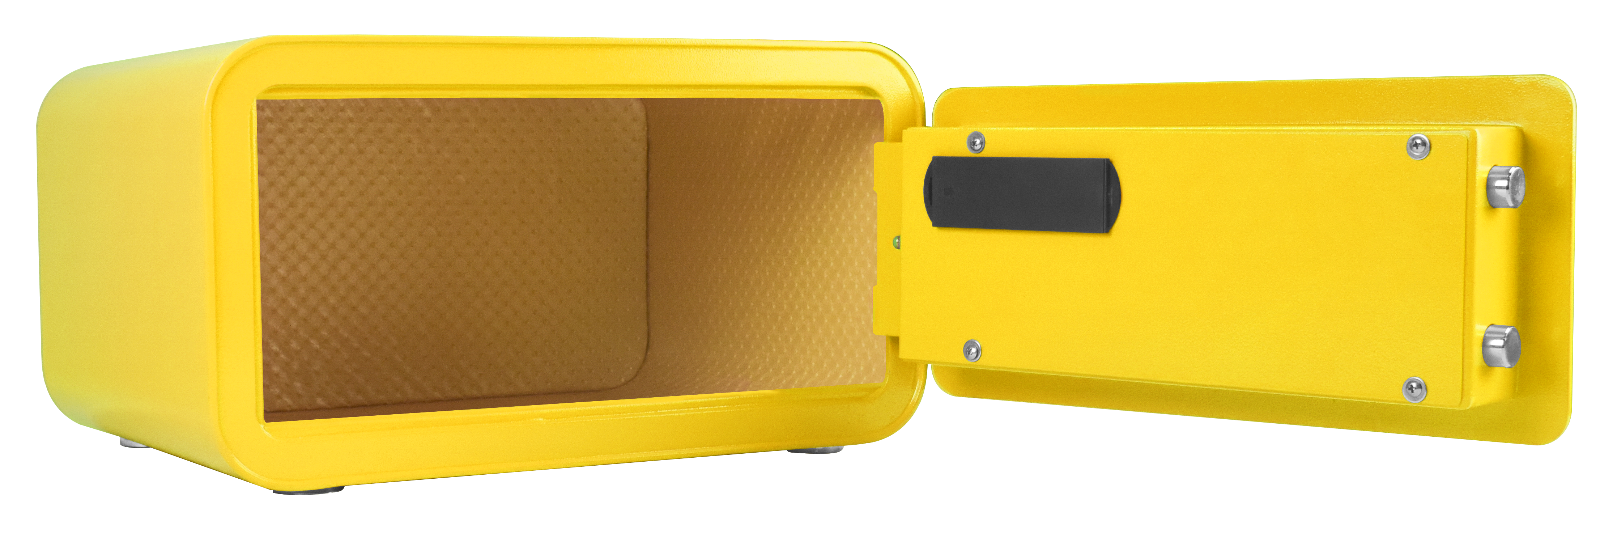 yellow personal safe